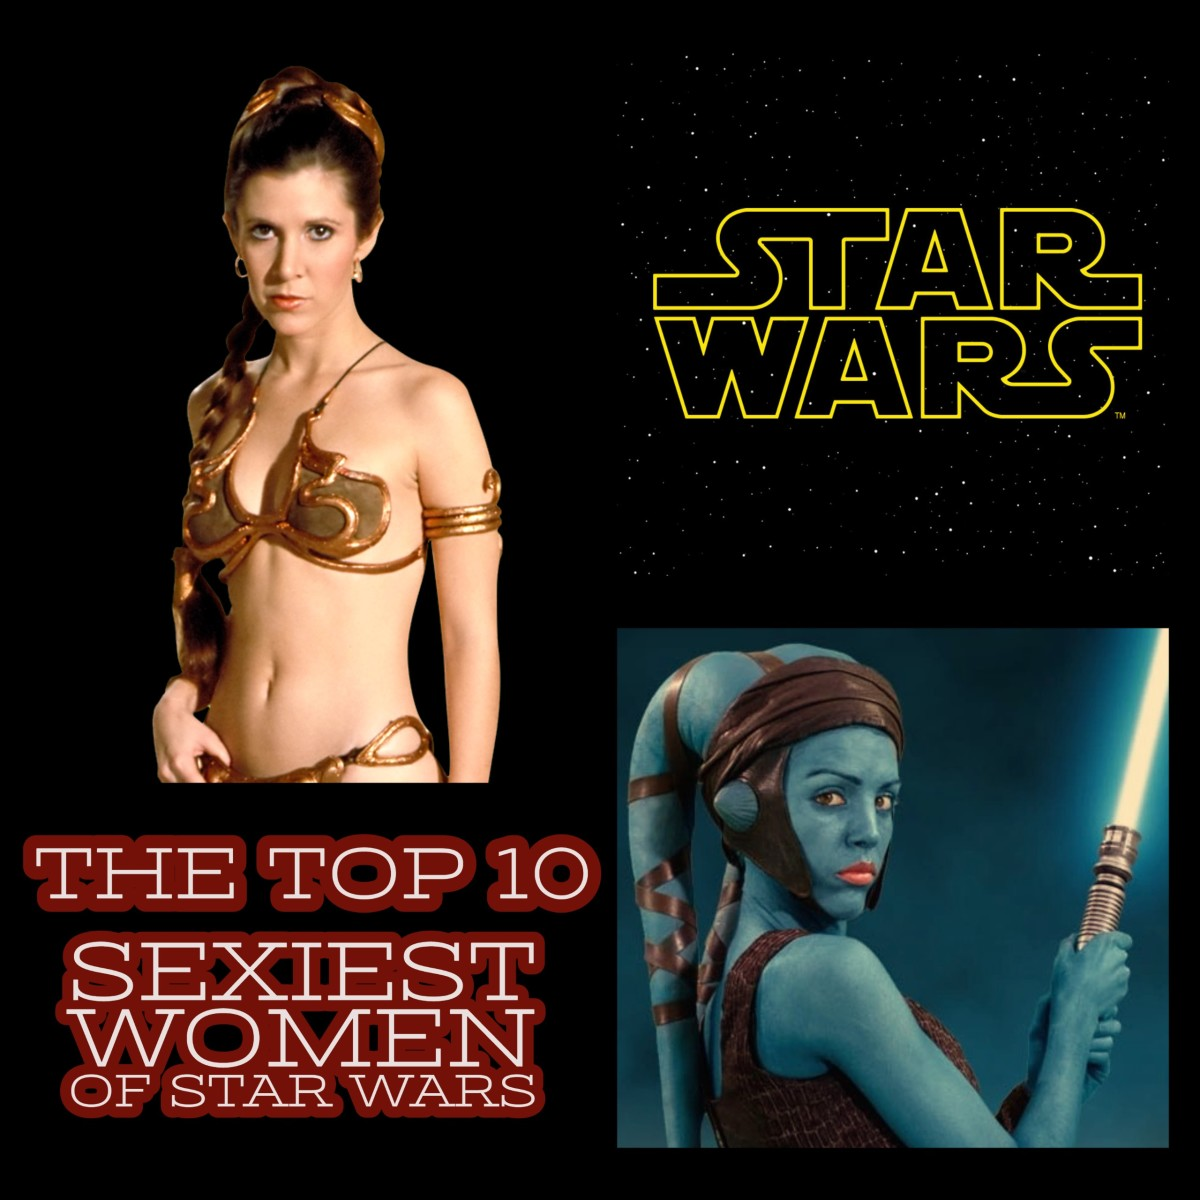 From Twi'leks to the Echani, this article examines the top 10 Sexiest Women of Star Wars.